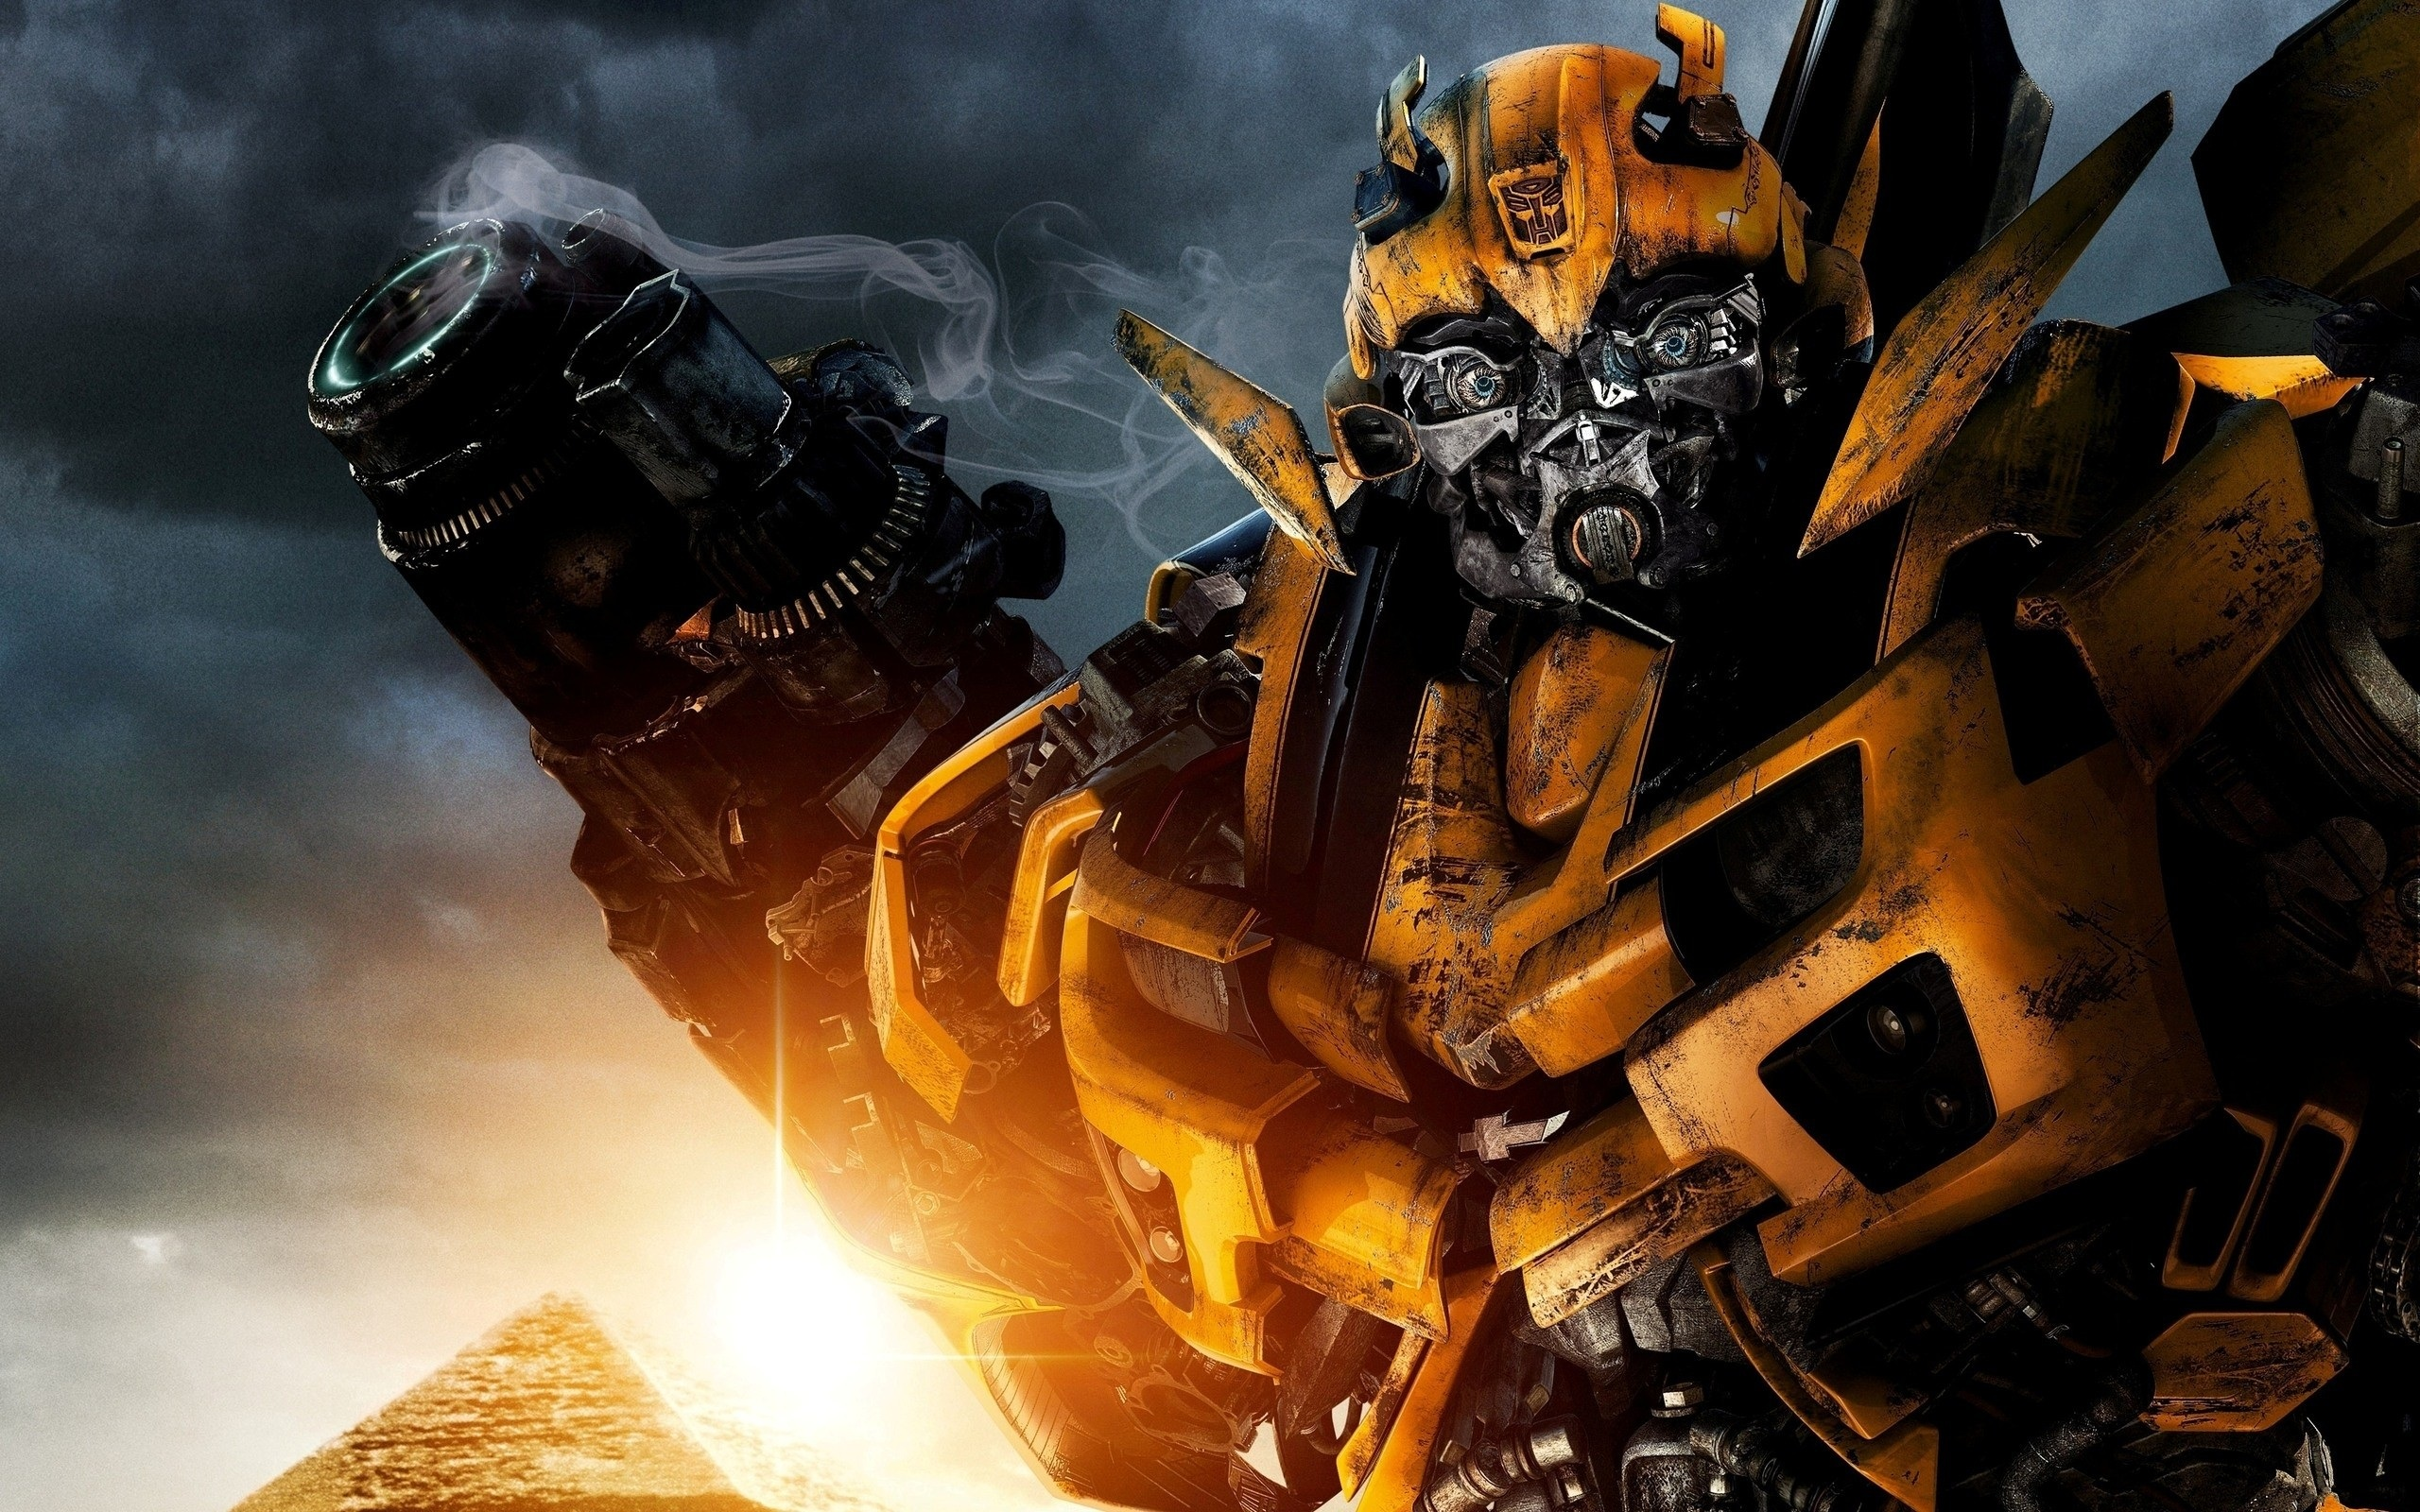 Bumblebee In Transformers 2 Wallpapers HD Wallpapers 2560x1600